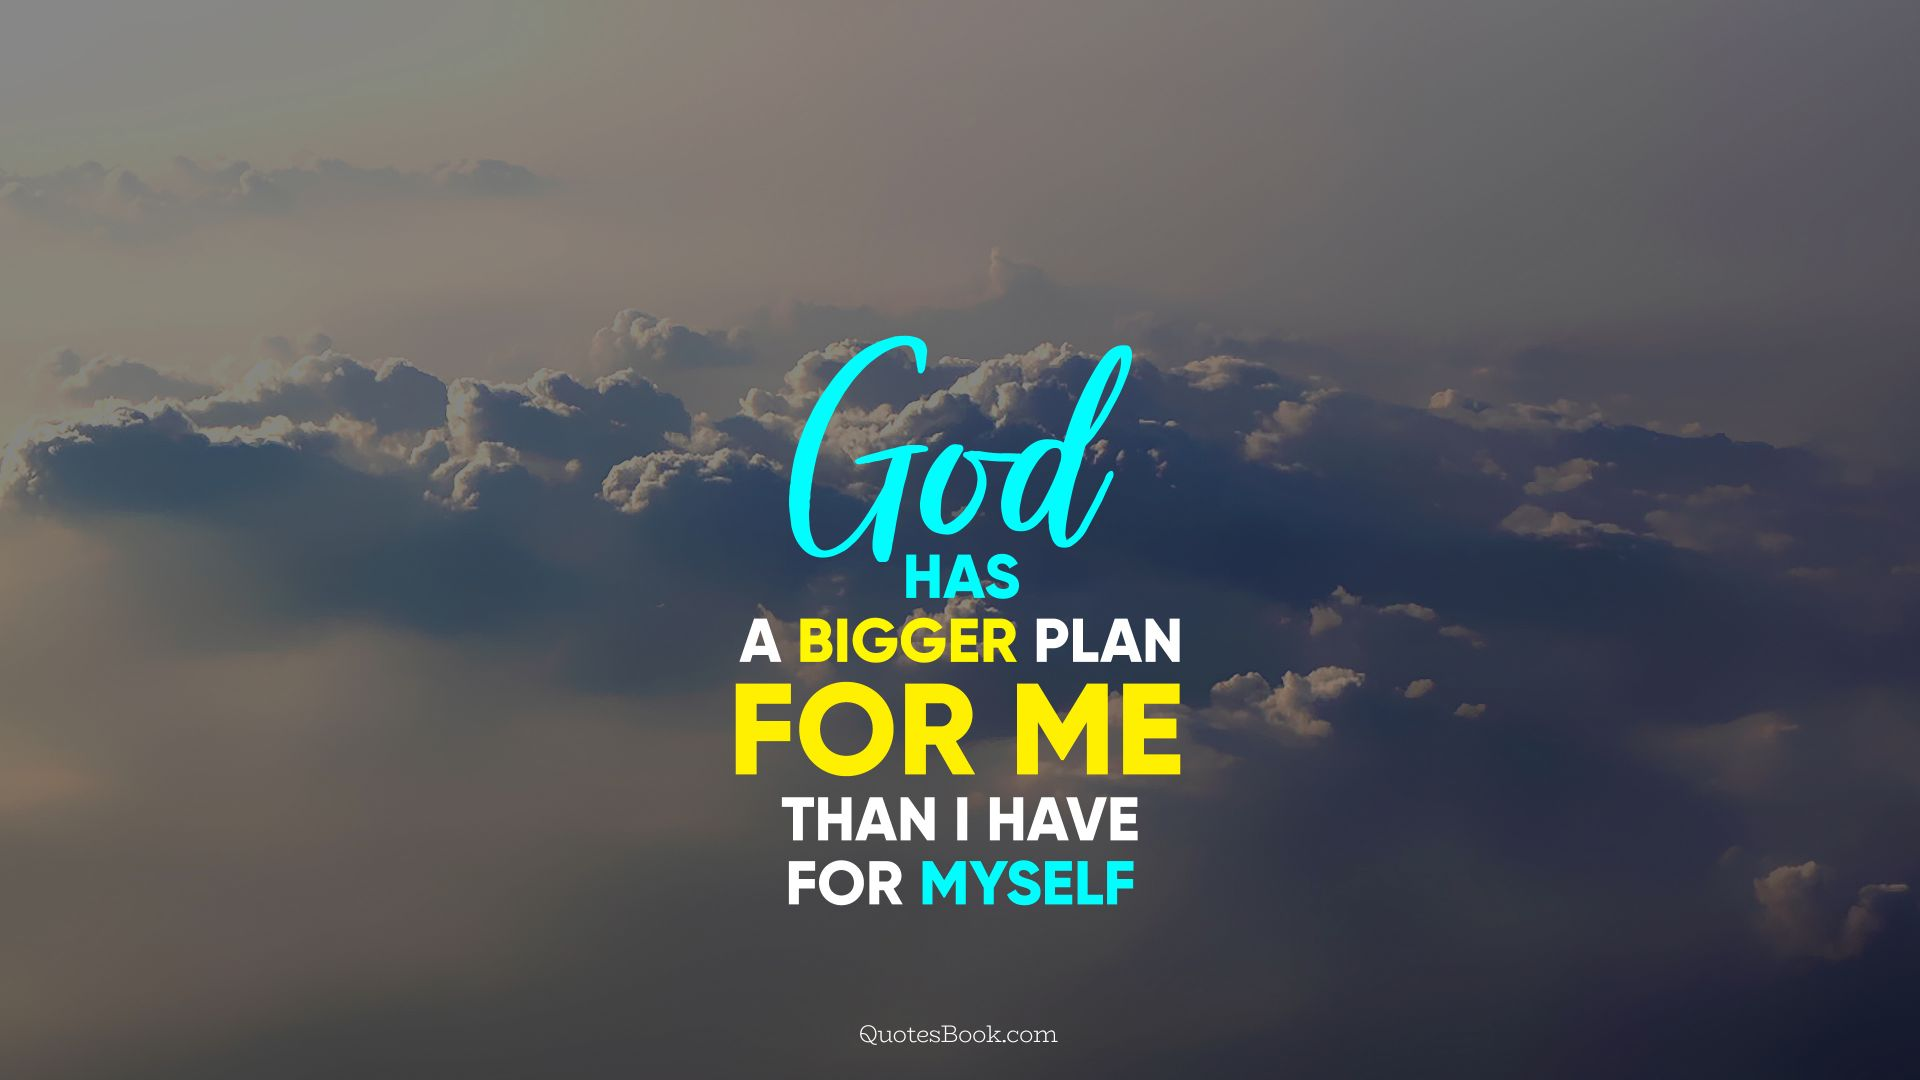 God has a bigger plan for me than I have for myself - QuotesBook